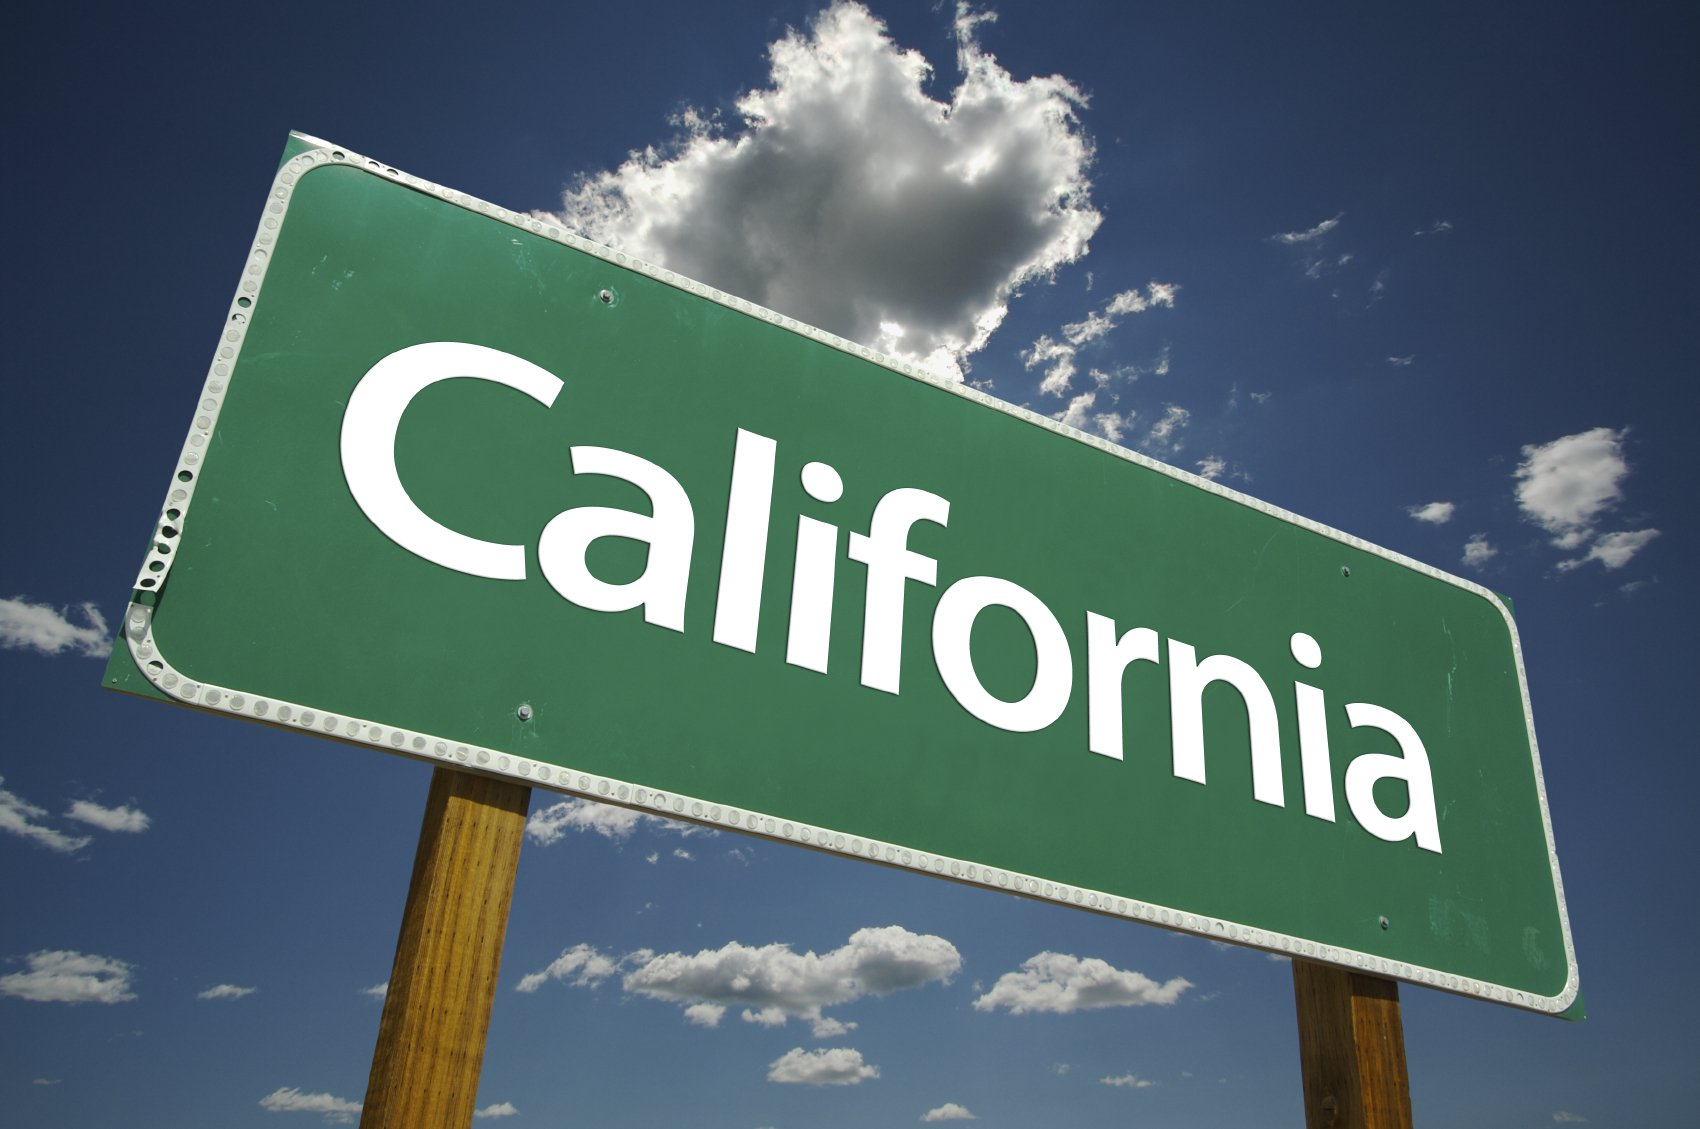 California overtakes Britain to become fifth biggest economy in the world